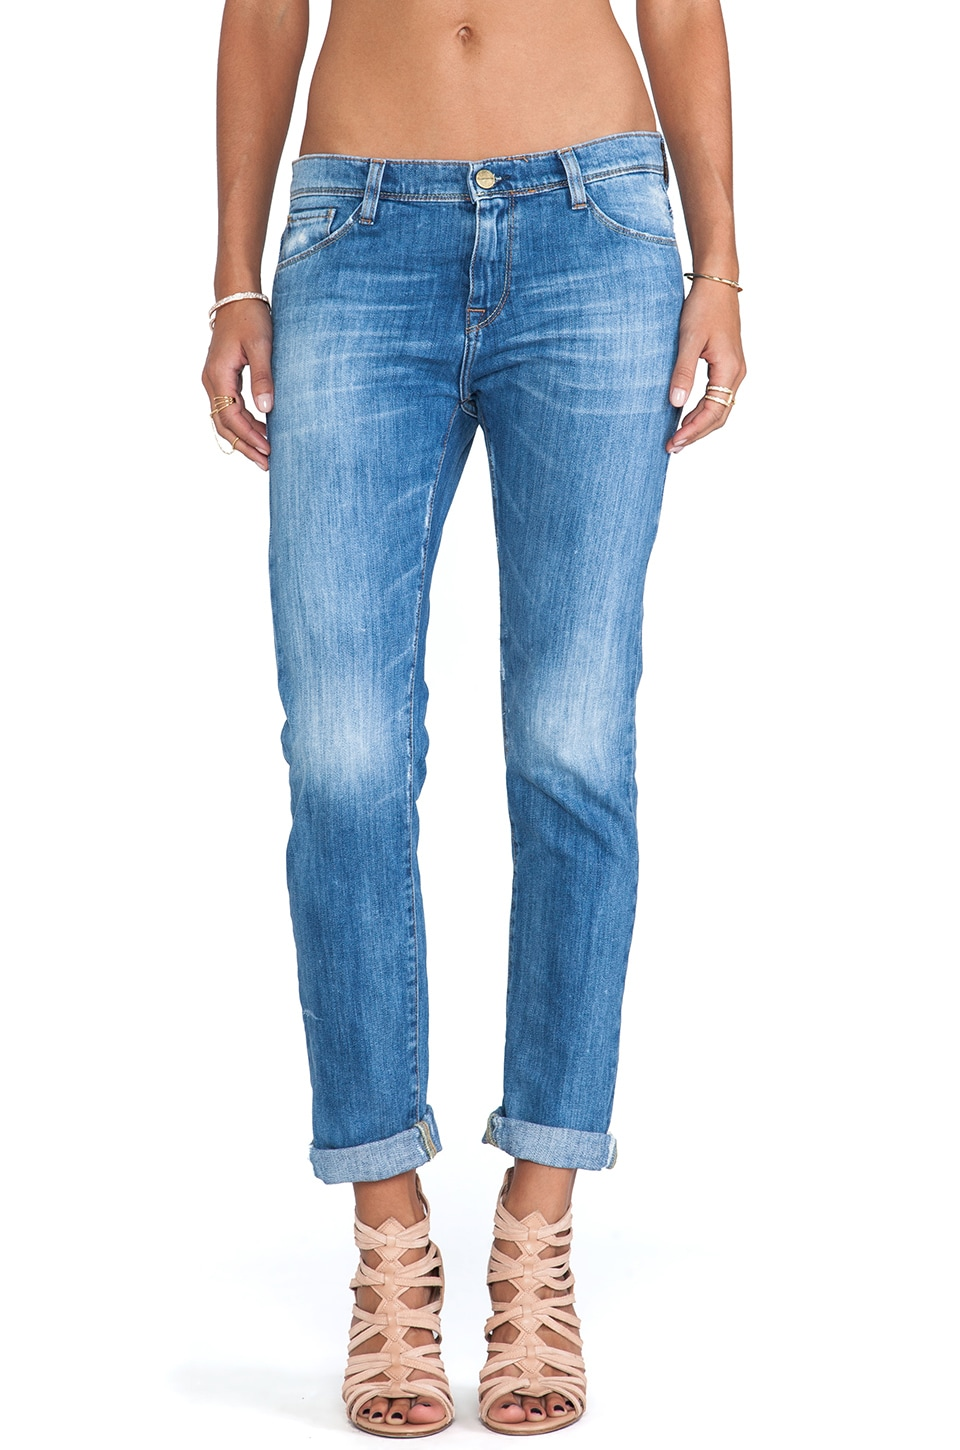 Acquaverde Gisele Boyfriend Jean in Distressed New Legend